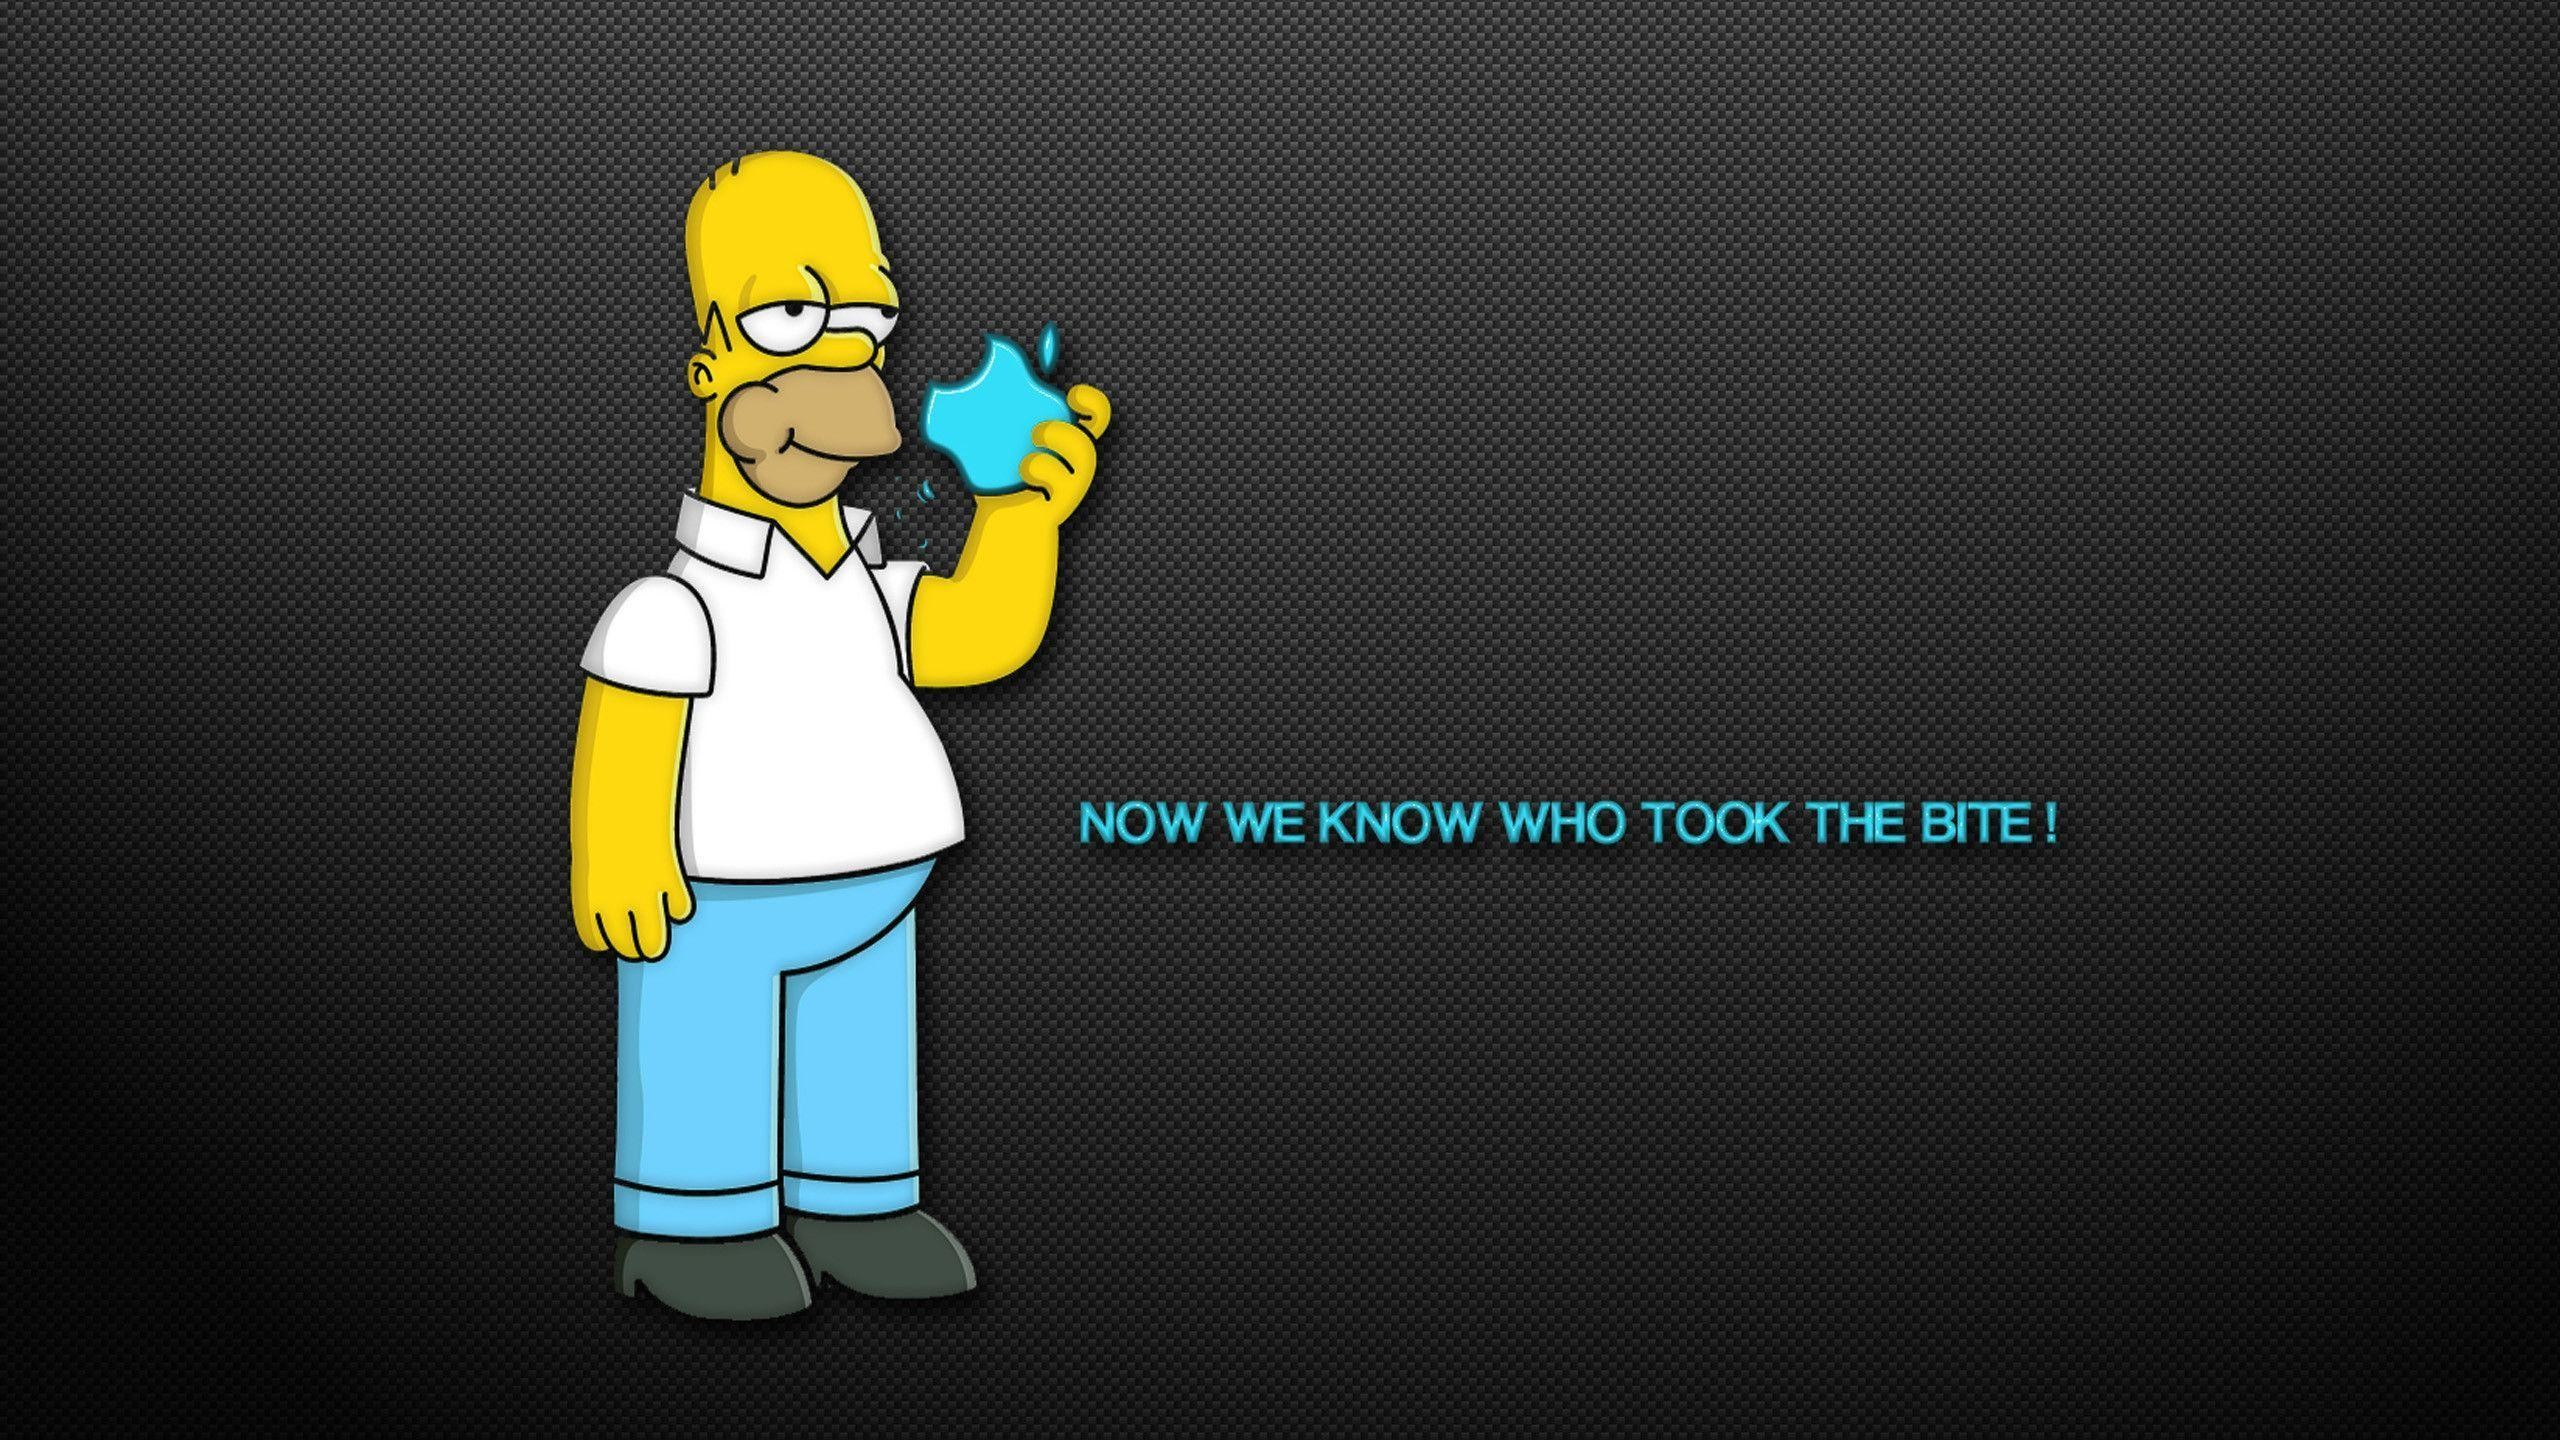 Funny Wallpapers Funny Pc Wallpapers Laptop Wallpapers: Funny Desktop Wallpaper Pictures (56+ Images